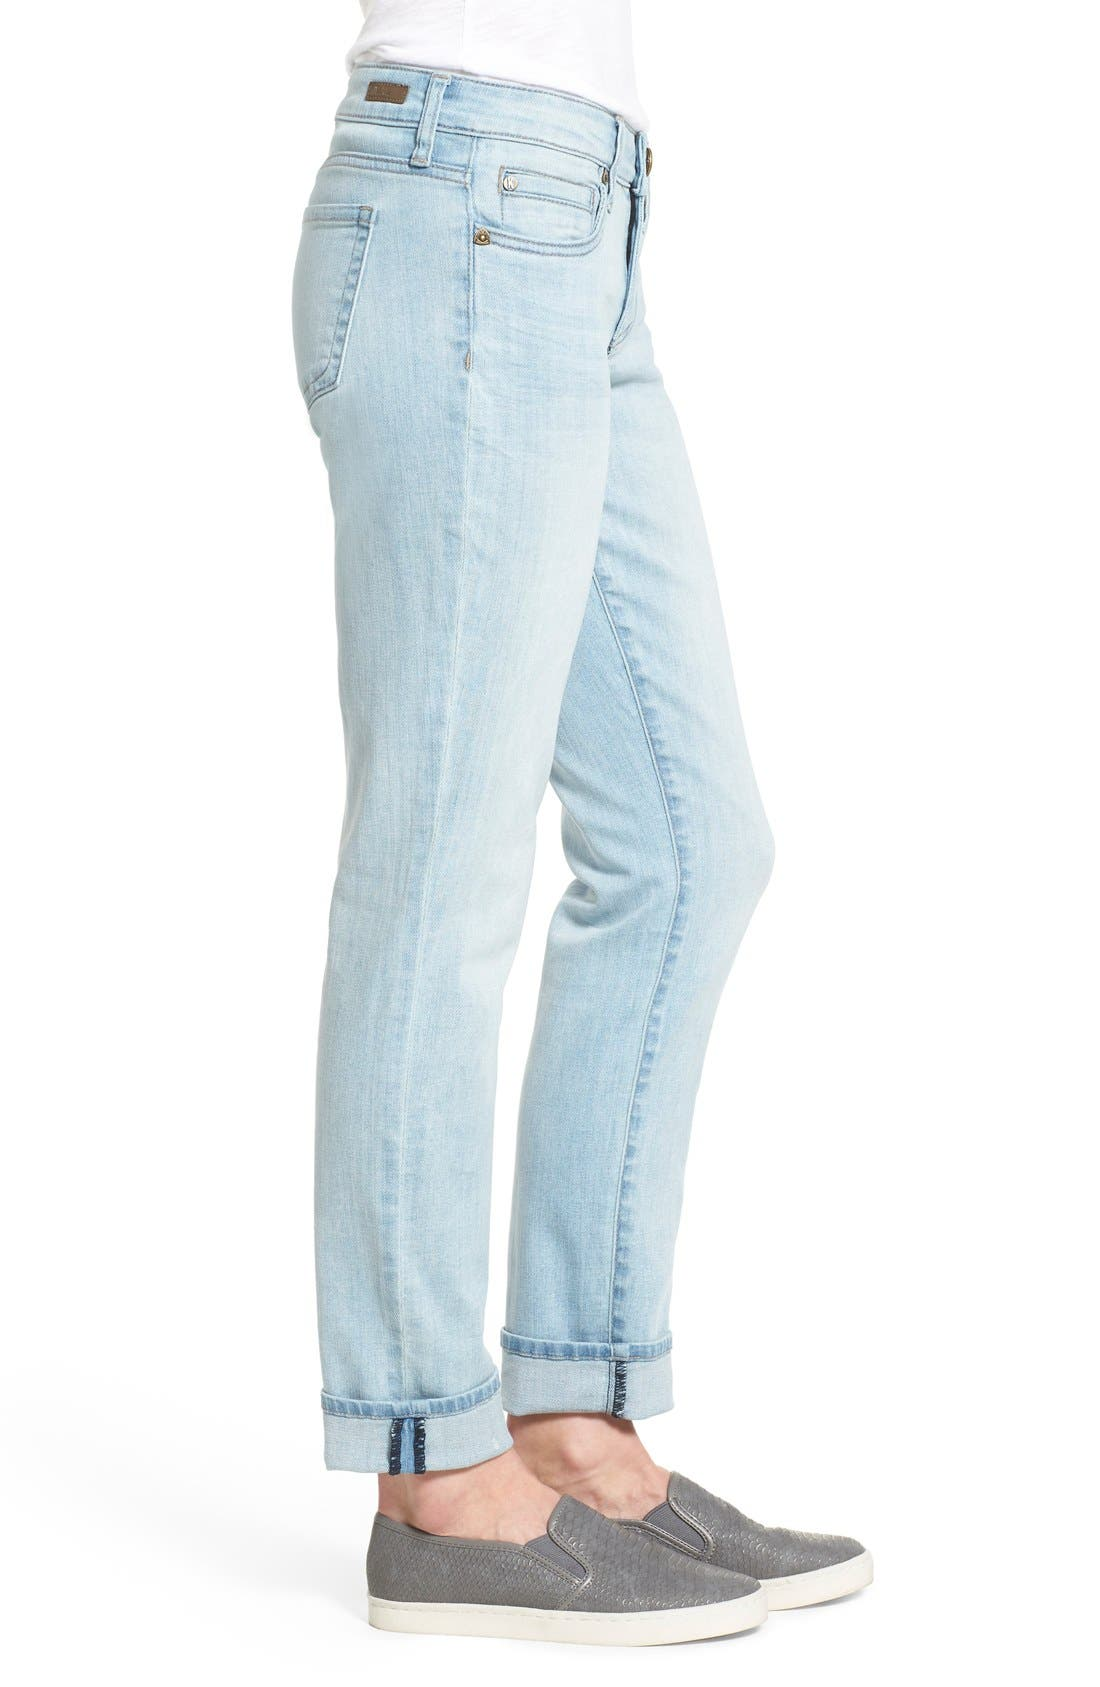 Alternate Image 3  - KUT from the Kloth 'Catherine' Stretch Slim Boyfriend Jeans (Artistic)